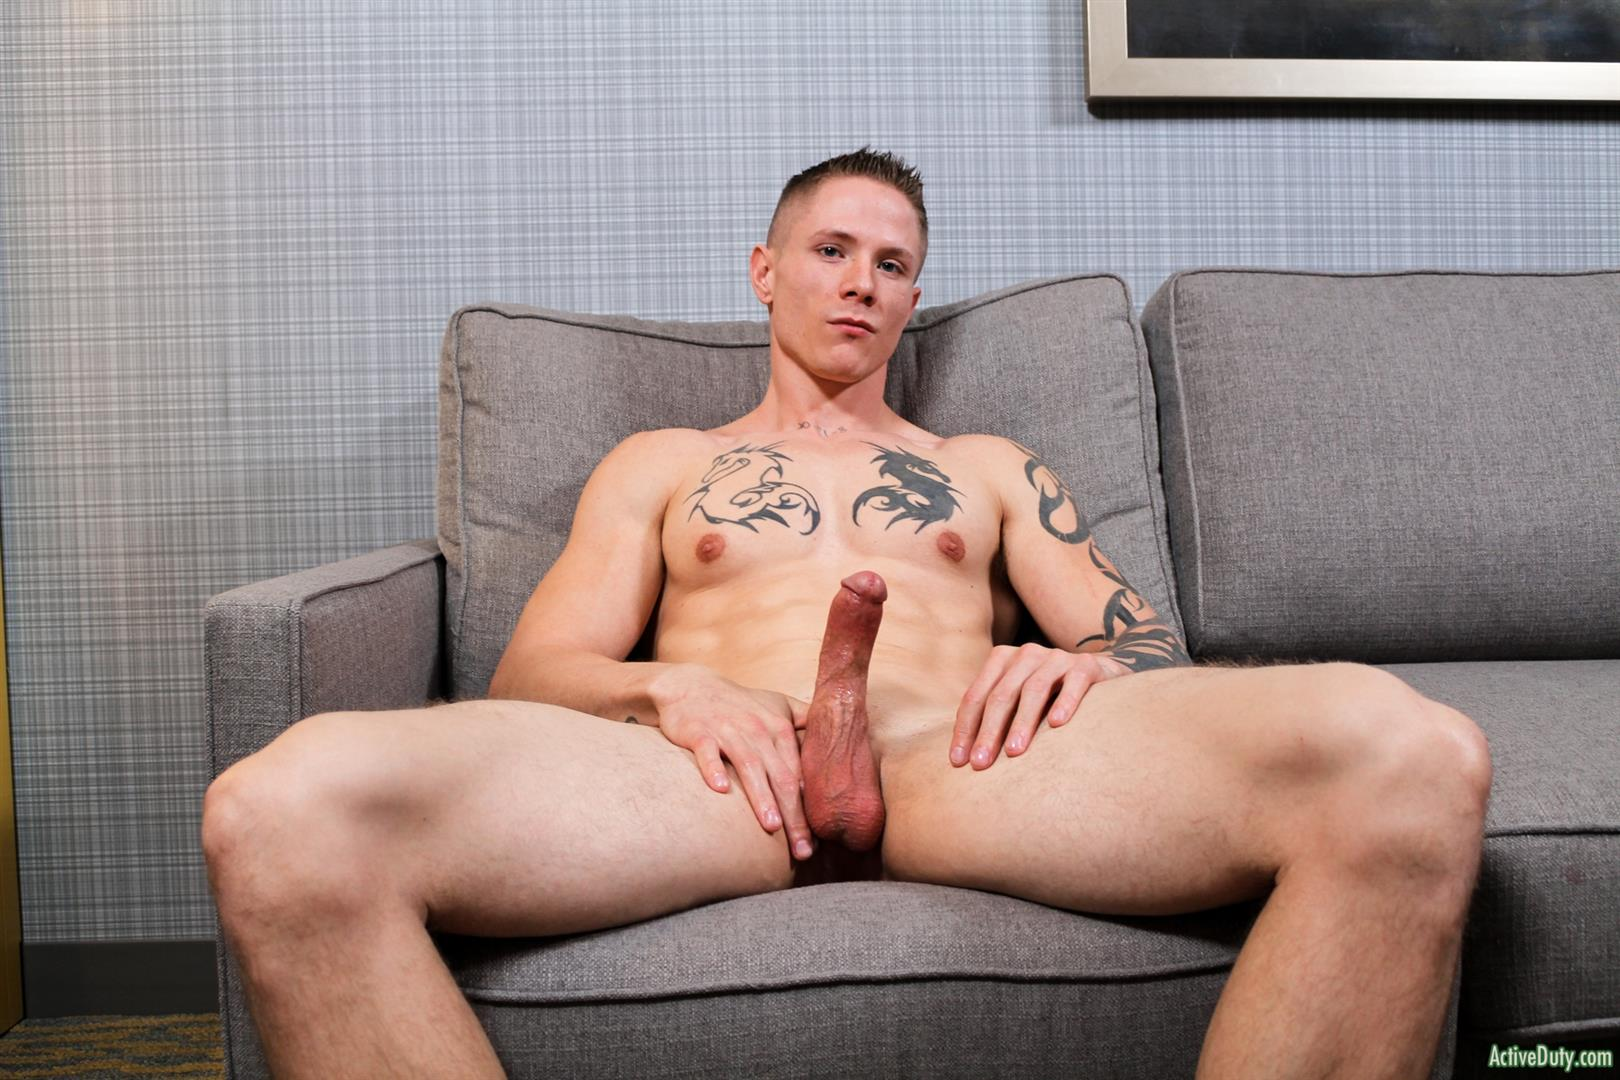 Great Straight Guy Beating Off